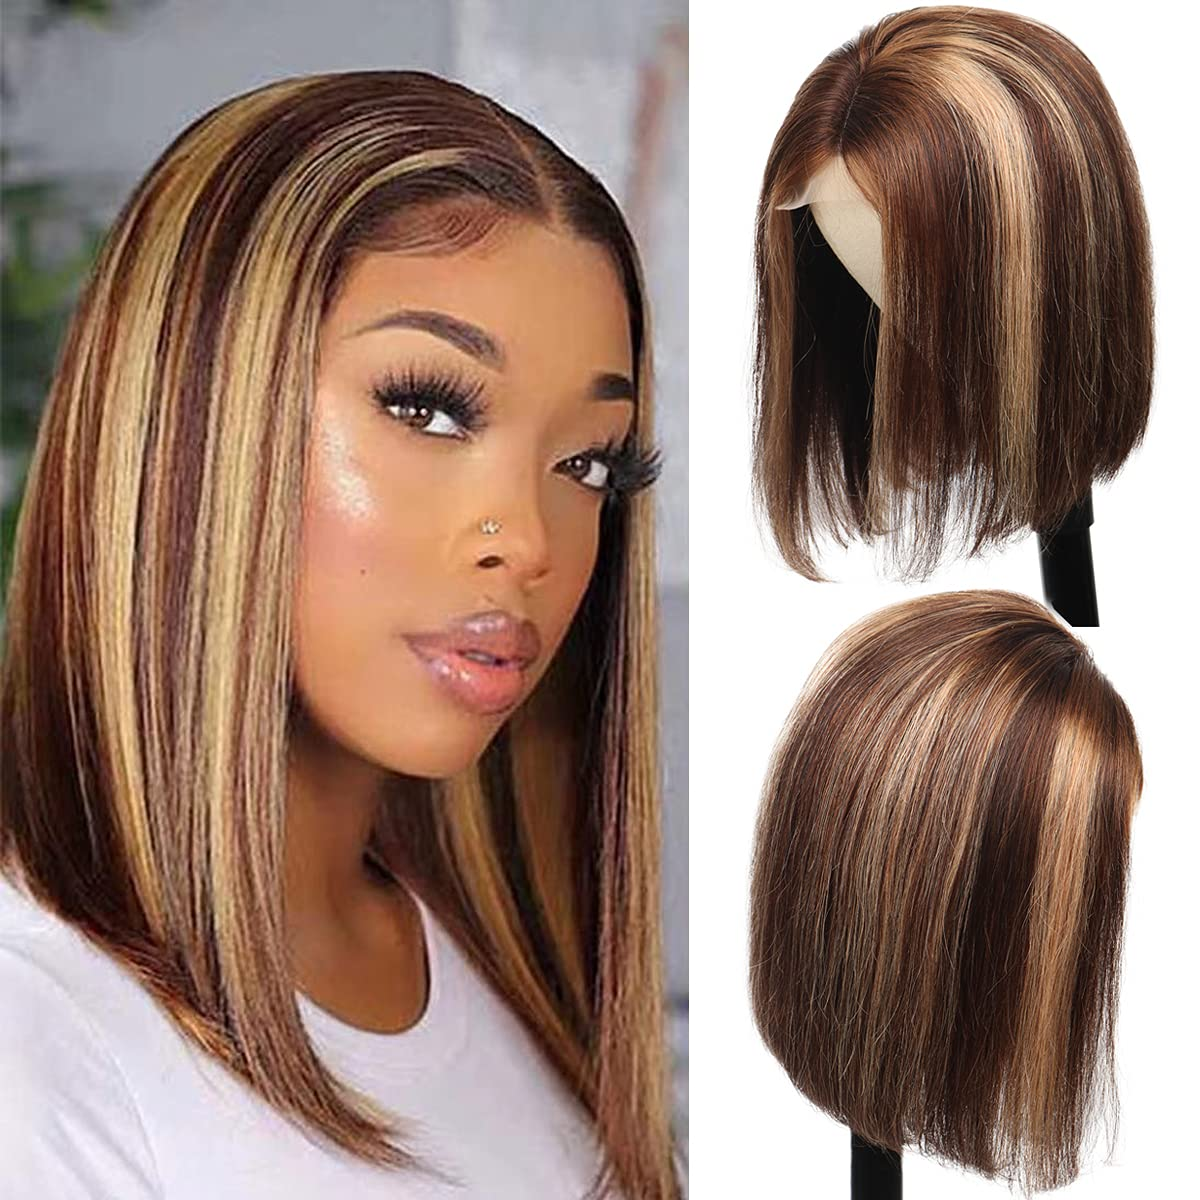 Highlight 4 27 Lace Bob Wigs for Women 2021 Sales of SALE items from new works model Ombre Fro Human Hair